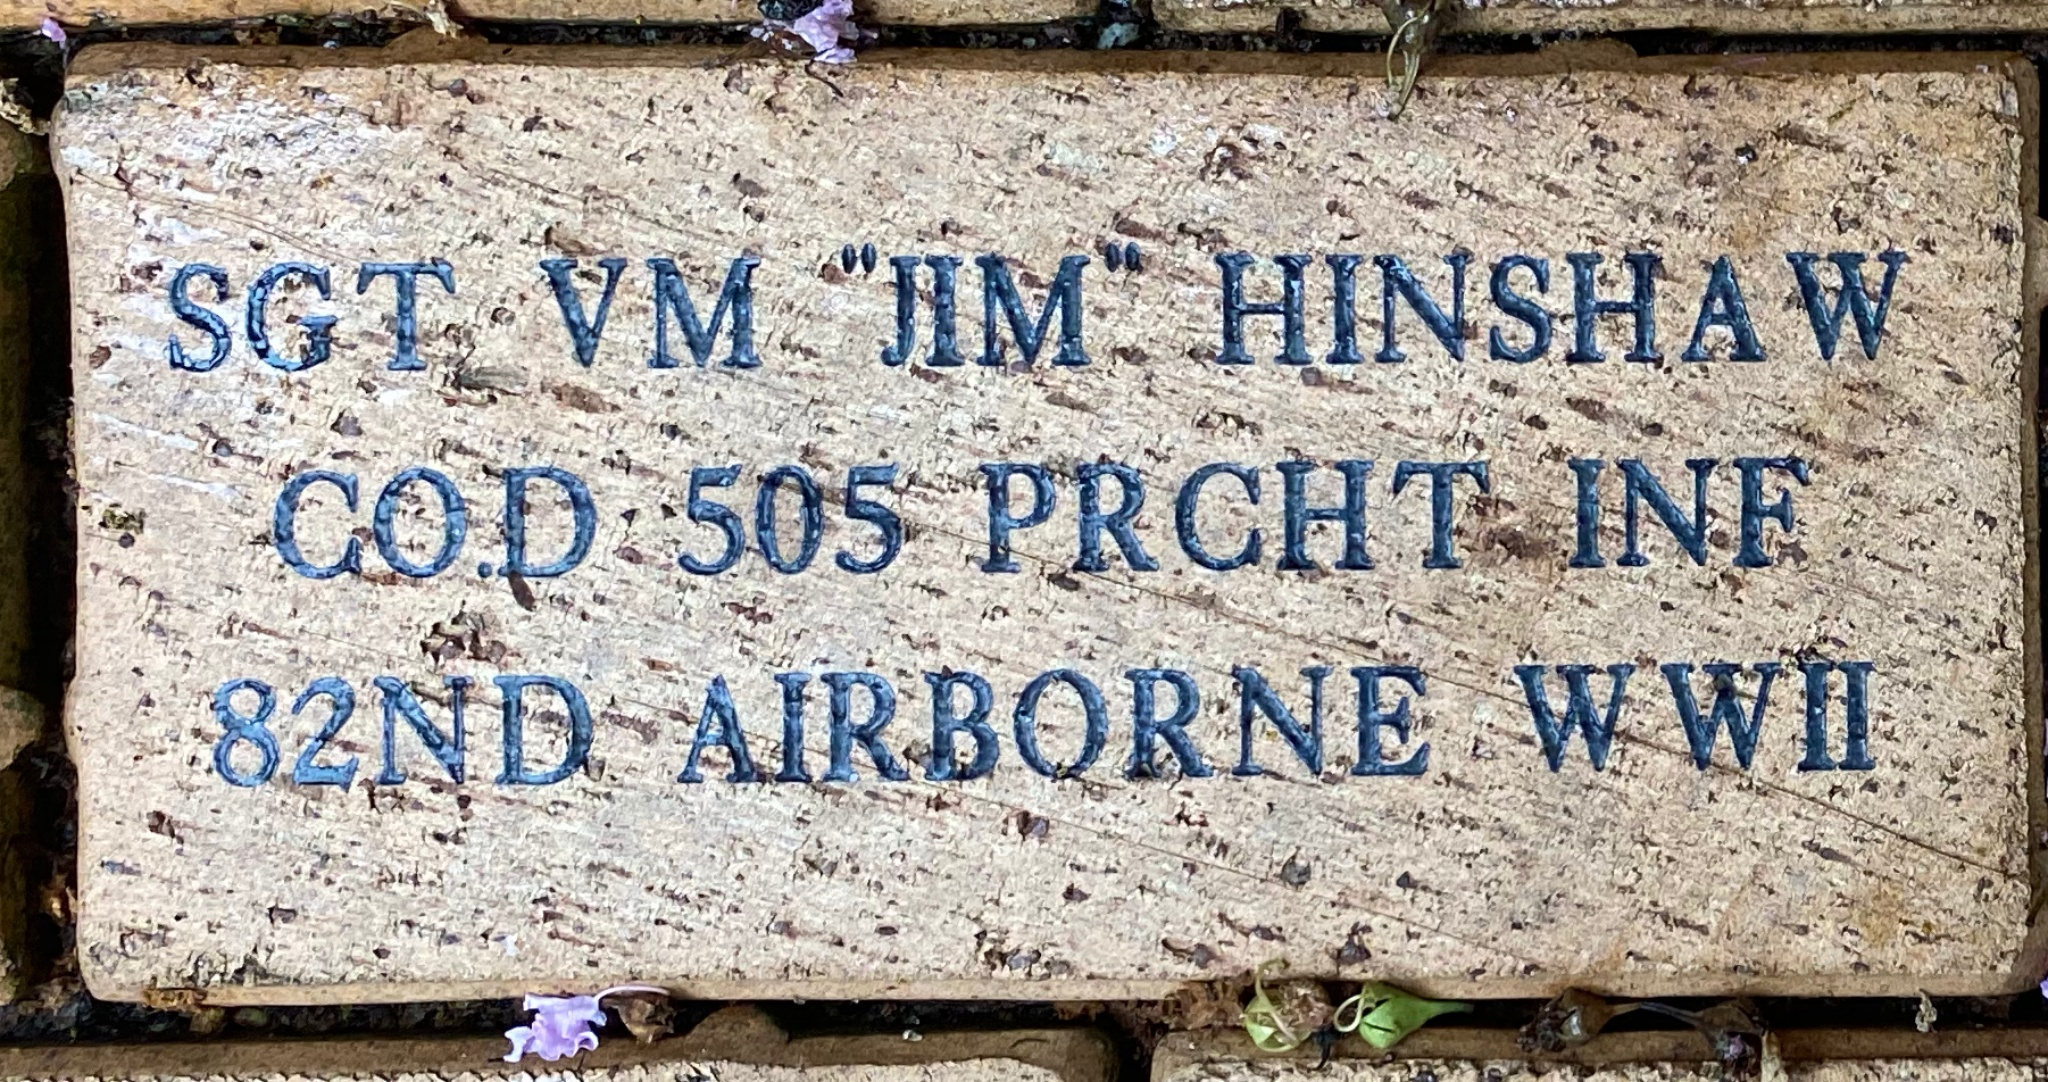 "SGT VM '""JIM'"" HINSHAW CO.D 505 PRCHT INF 82ND AIRBORNE WWII"